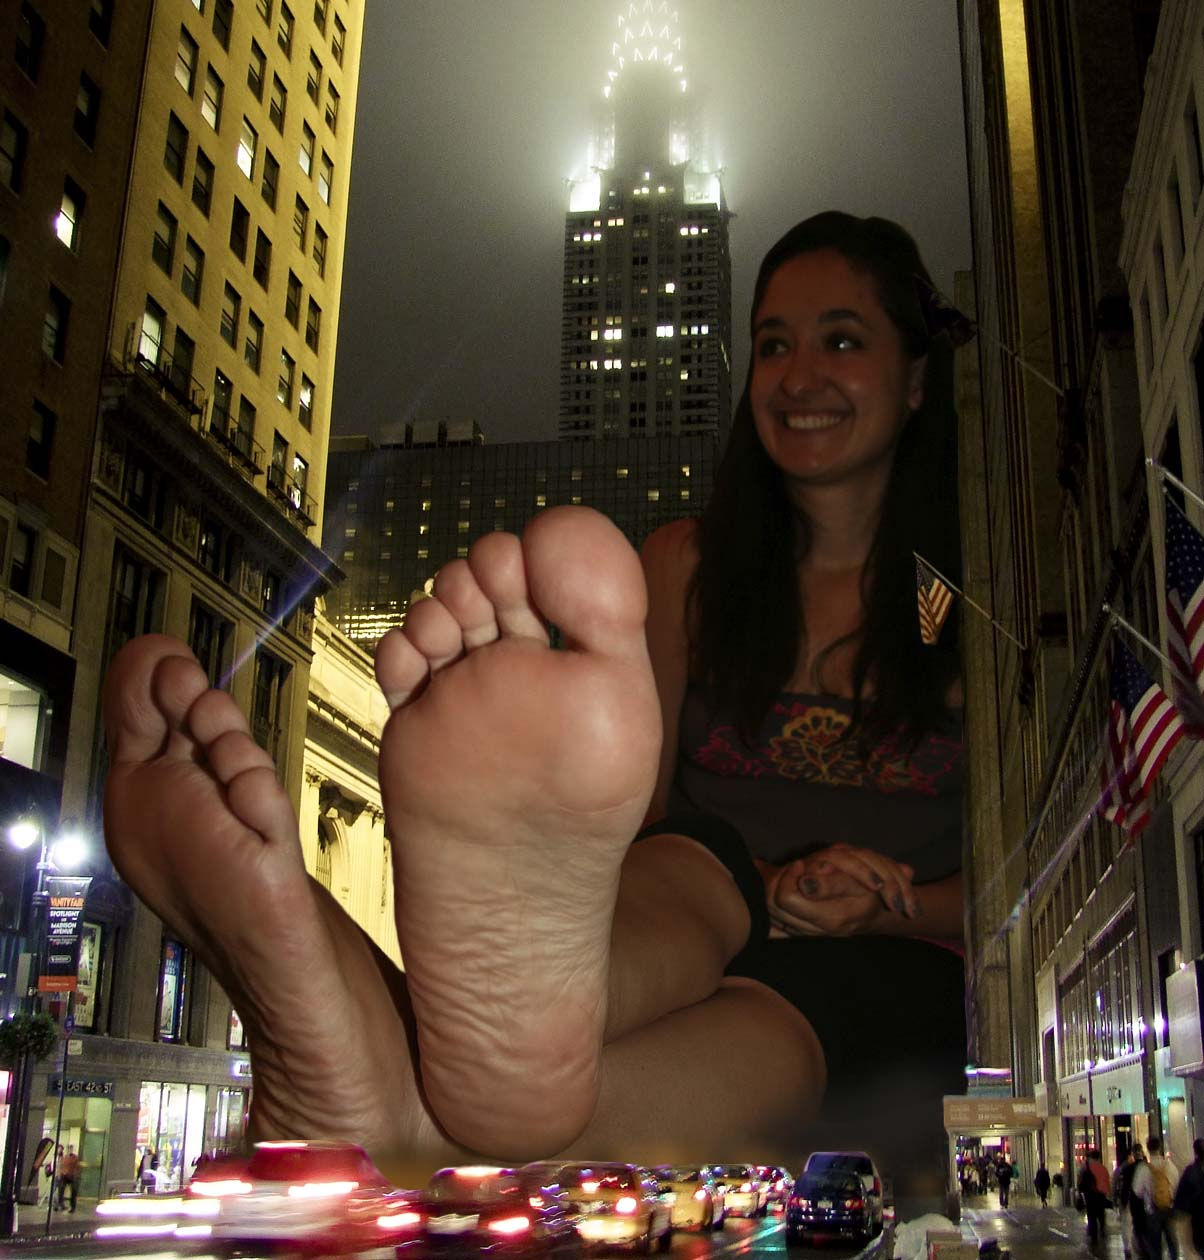 156964 - barefoot brunette city collage giantess sitting smiling